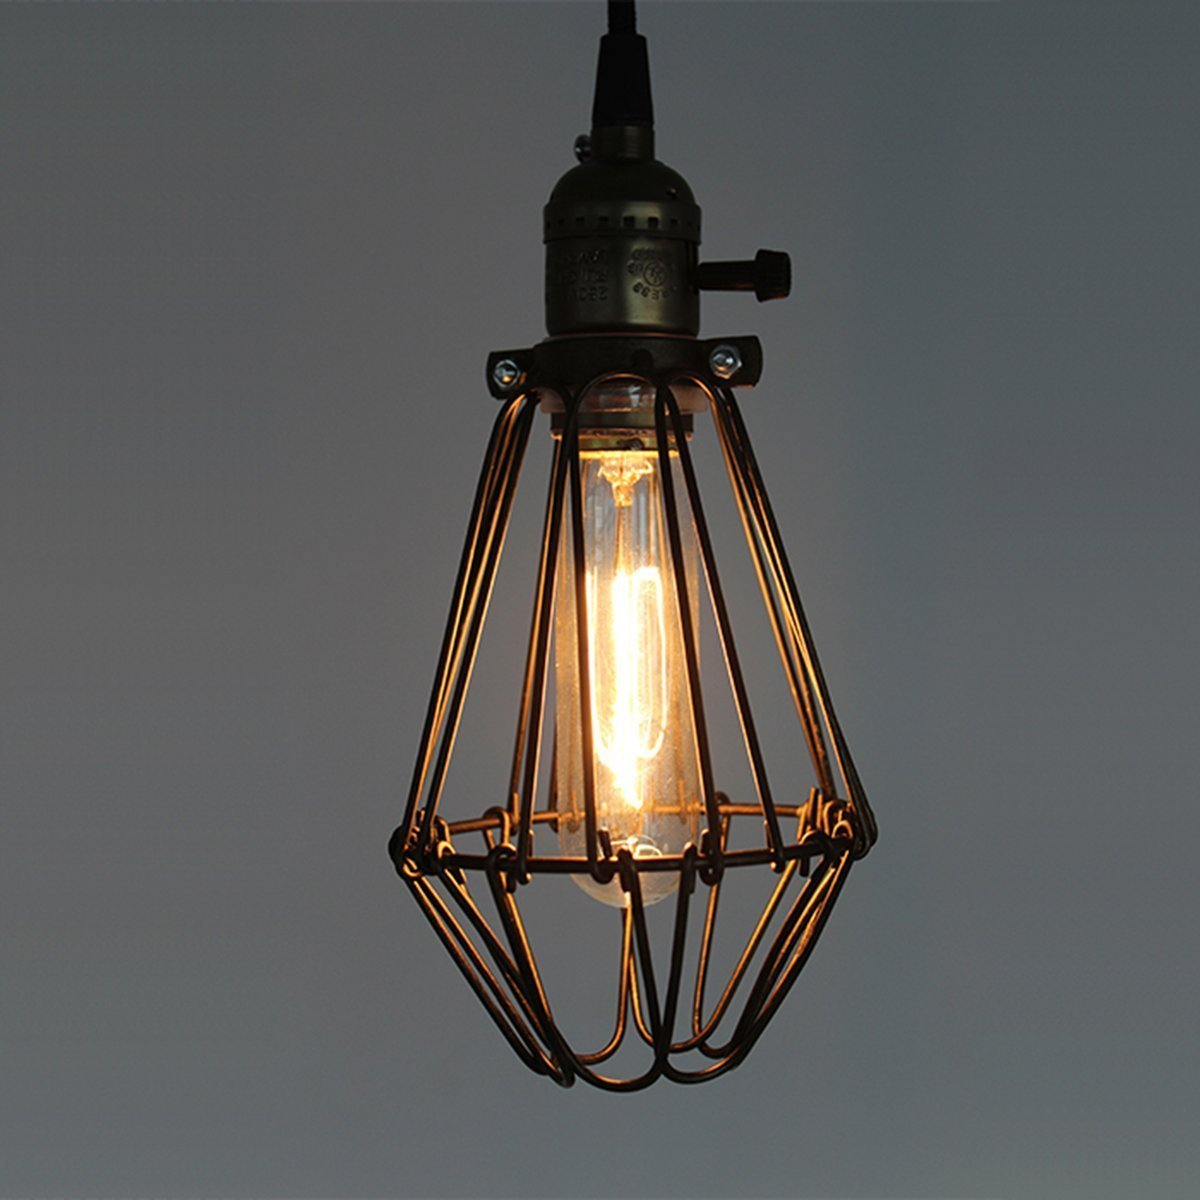 Ecopower Vintage Style Industrial Opening and Closing Hanging Light Pendant Lamp Wire Cage Lamp Guard